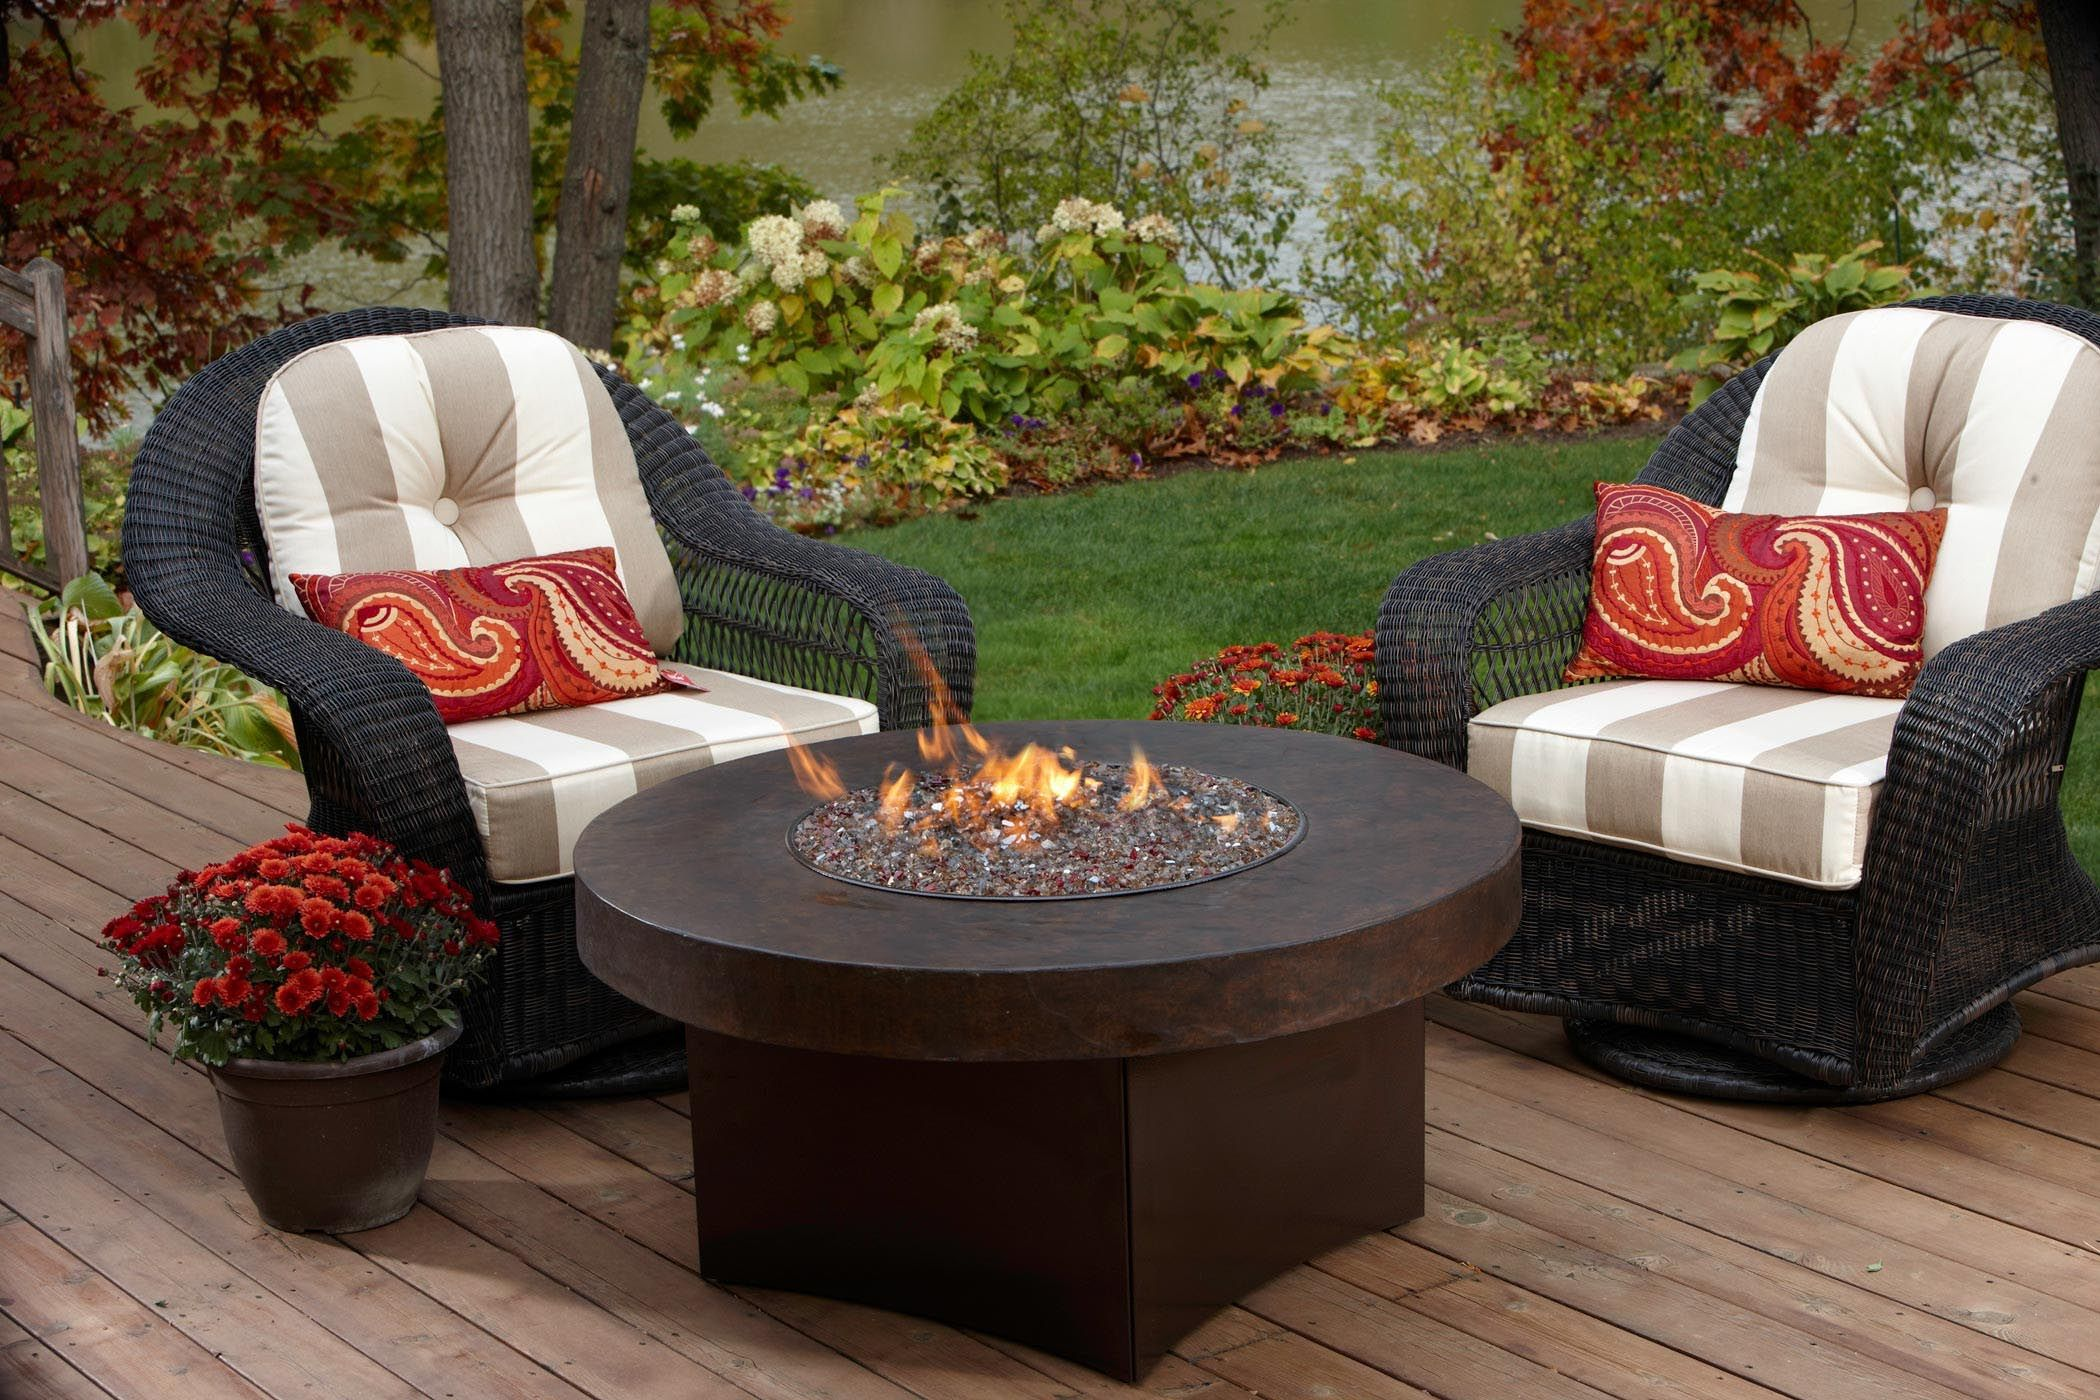 Outdoor Fire Pit Table and Chairs Fire Pit Pinterest